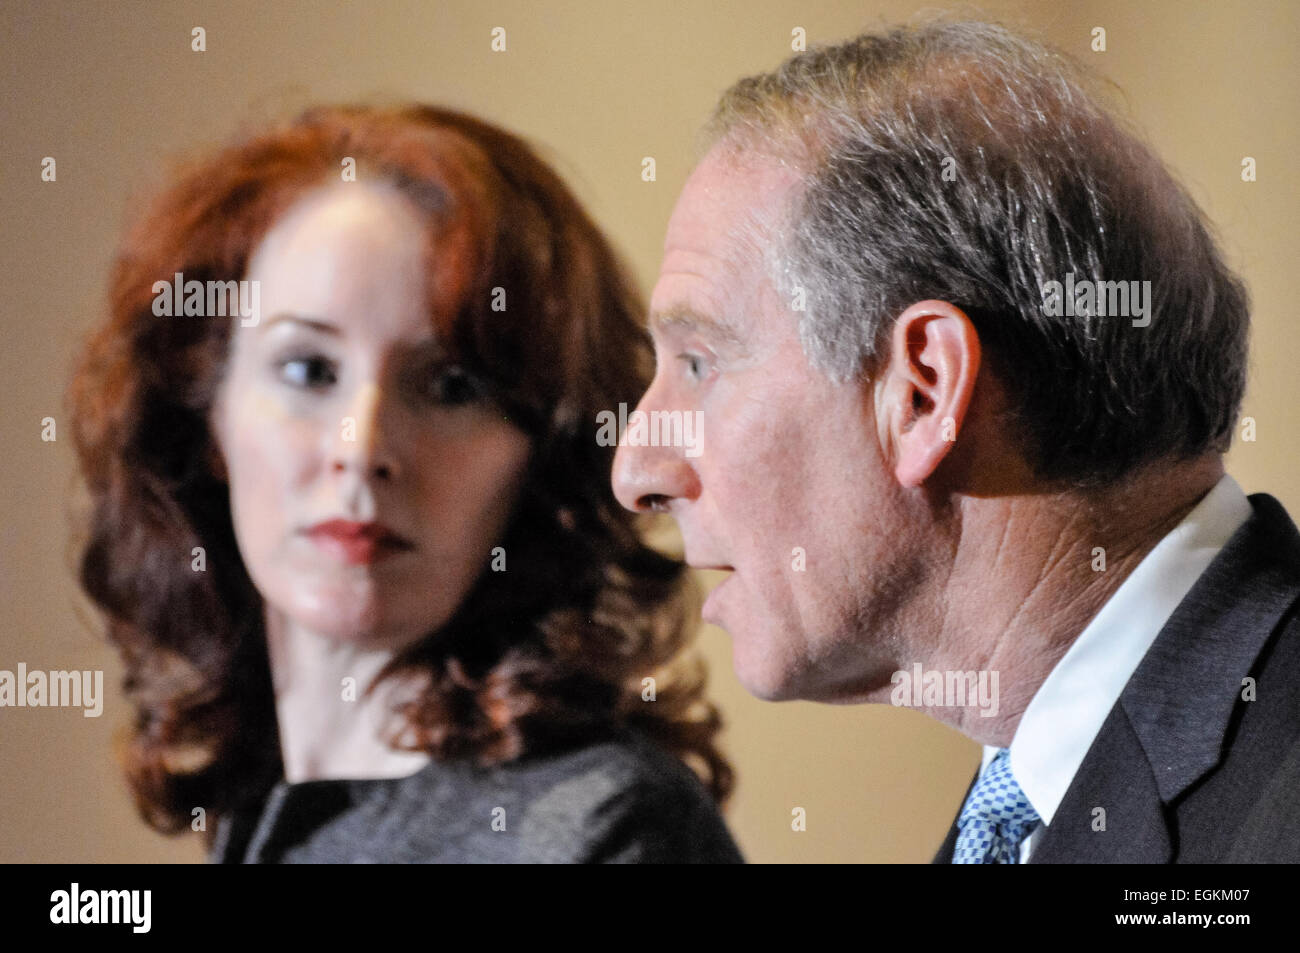 Belfast, Northern Ireland. 20 Dec 2013 - Dr Richard Haass and Prof Meghan O'Sullivan deliver their opinion on - Stock Image